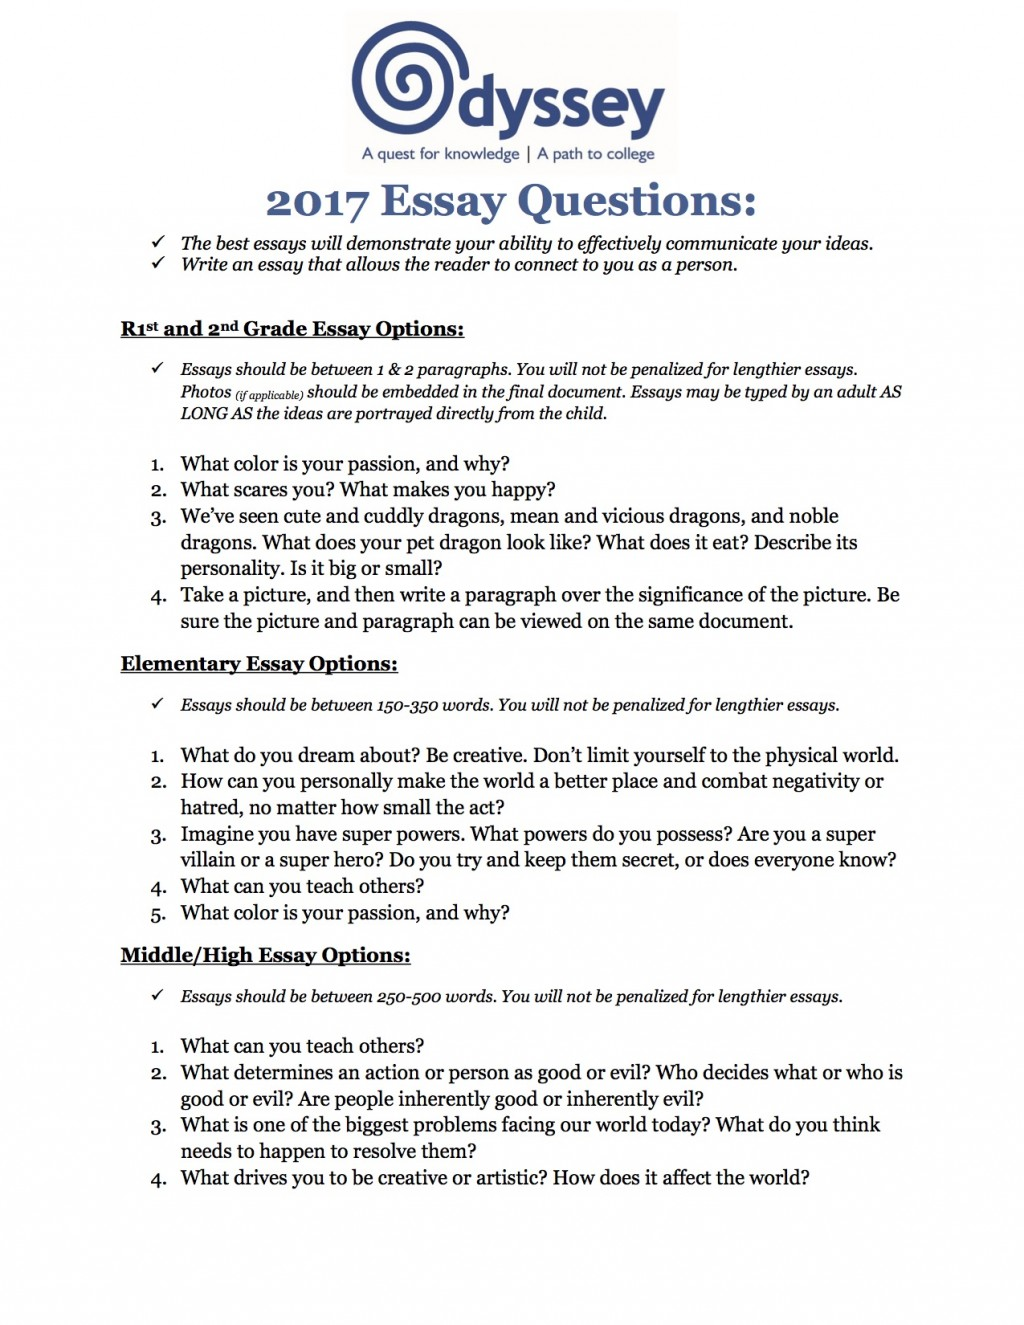 015 Best Essay Topics Example 5829f1d2c75f9a7c5588b1c6 Proposed20essay20topics202017 Surprising Composition For High School Students College Job Interview Large